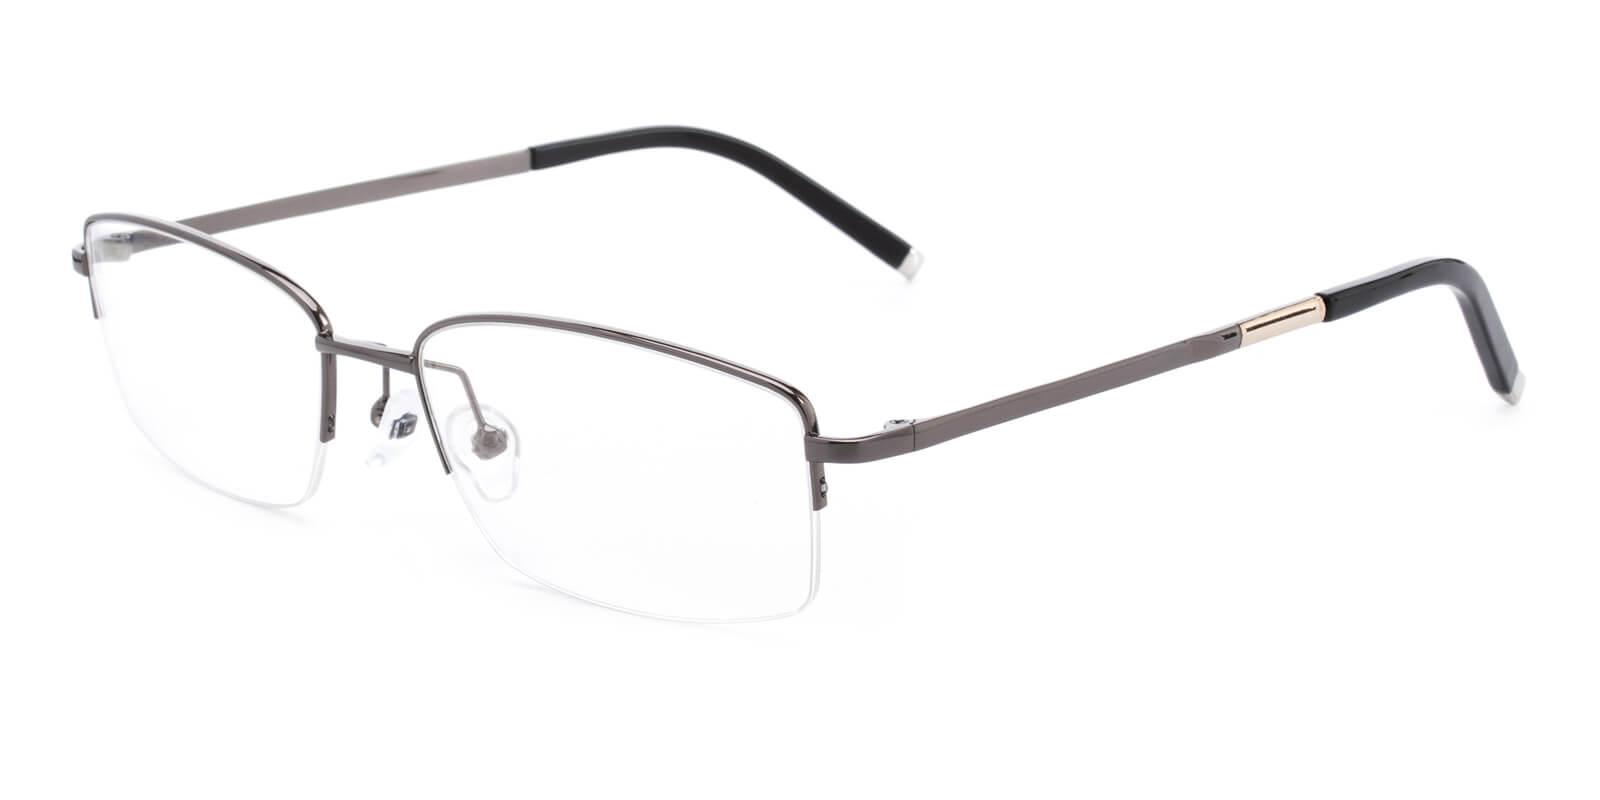 Revelino-Gun-Rectangle-Titanium-Eyeglasses-additional1